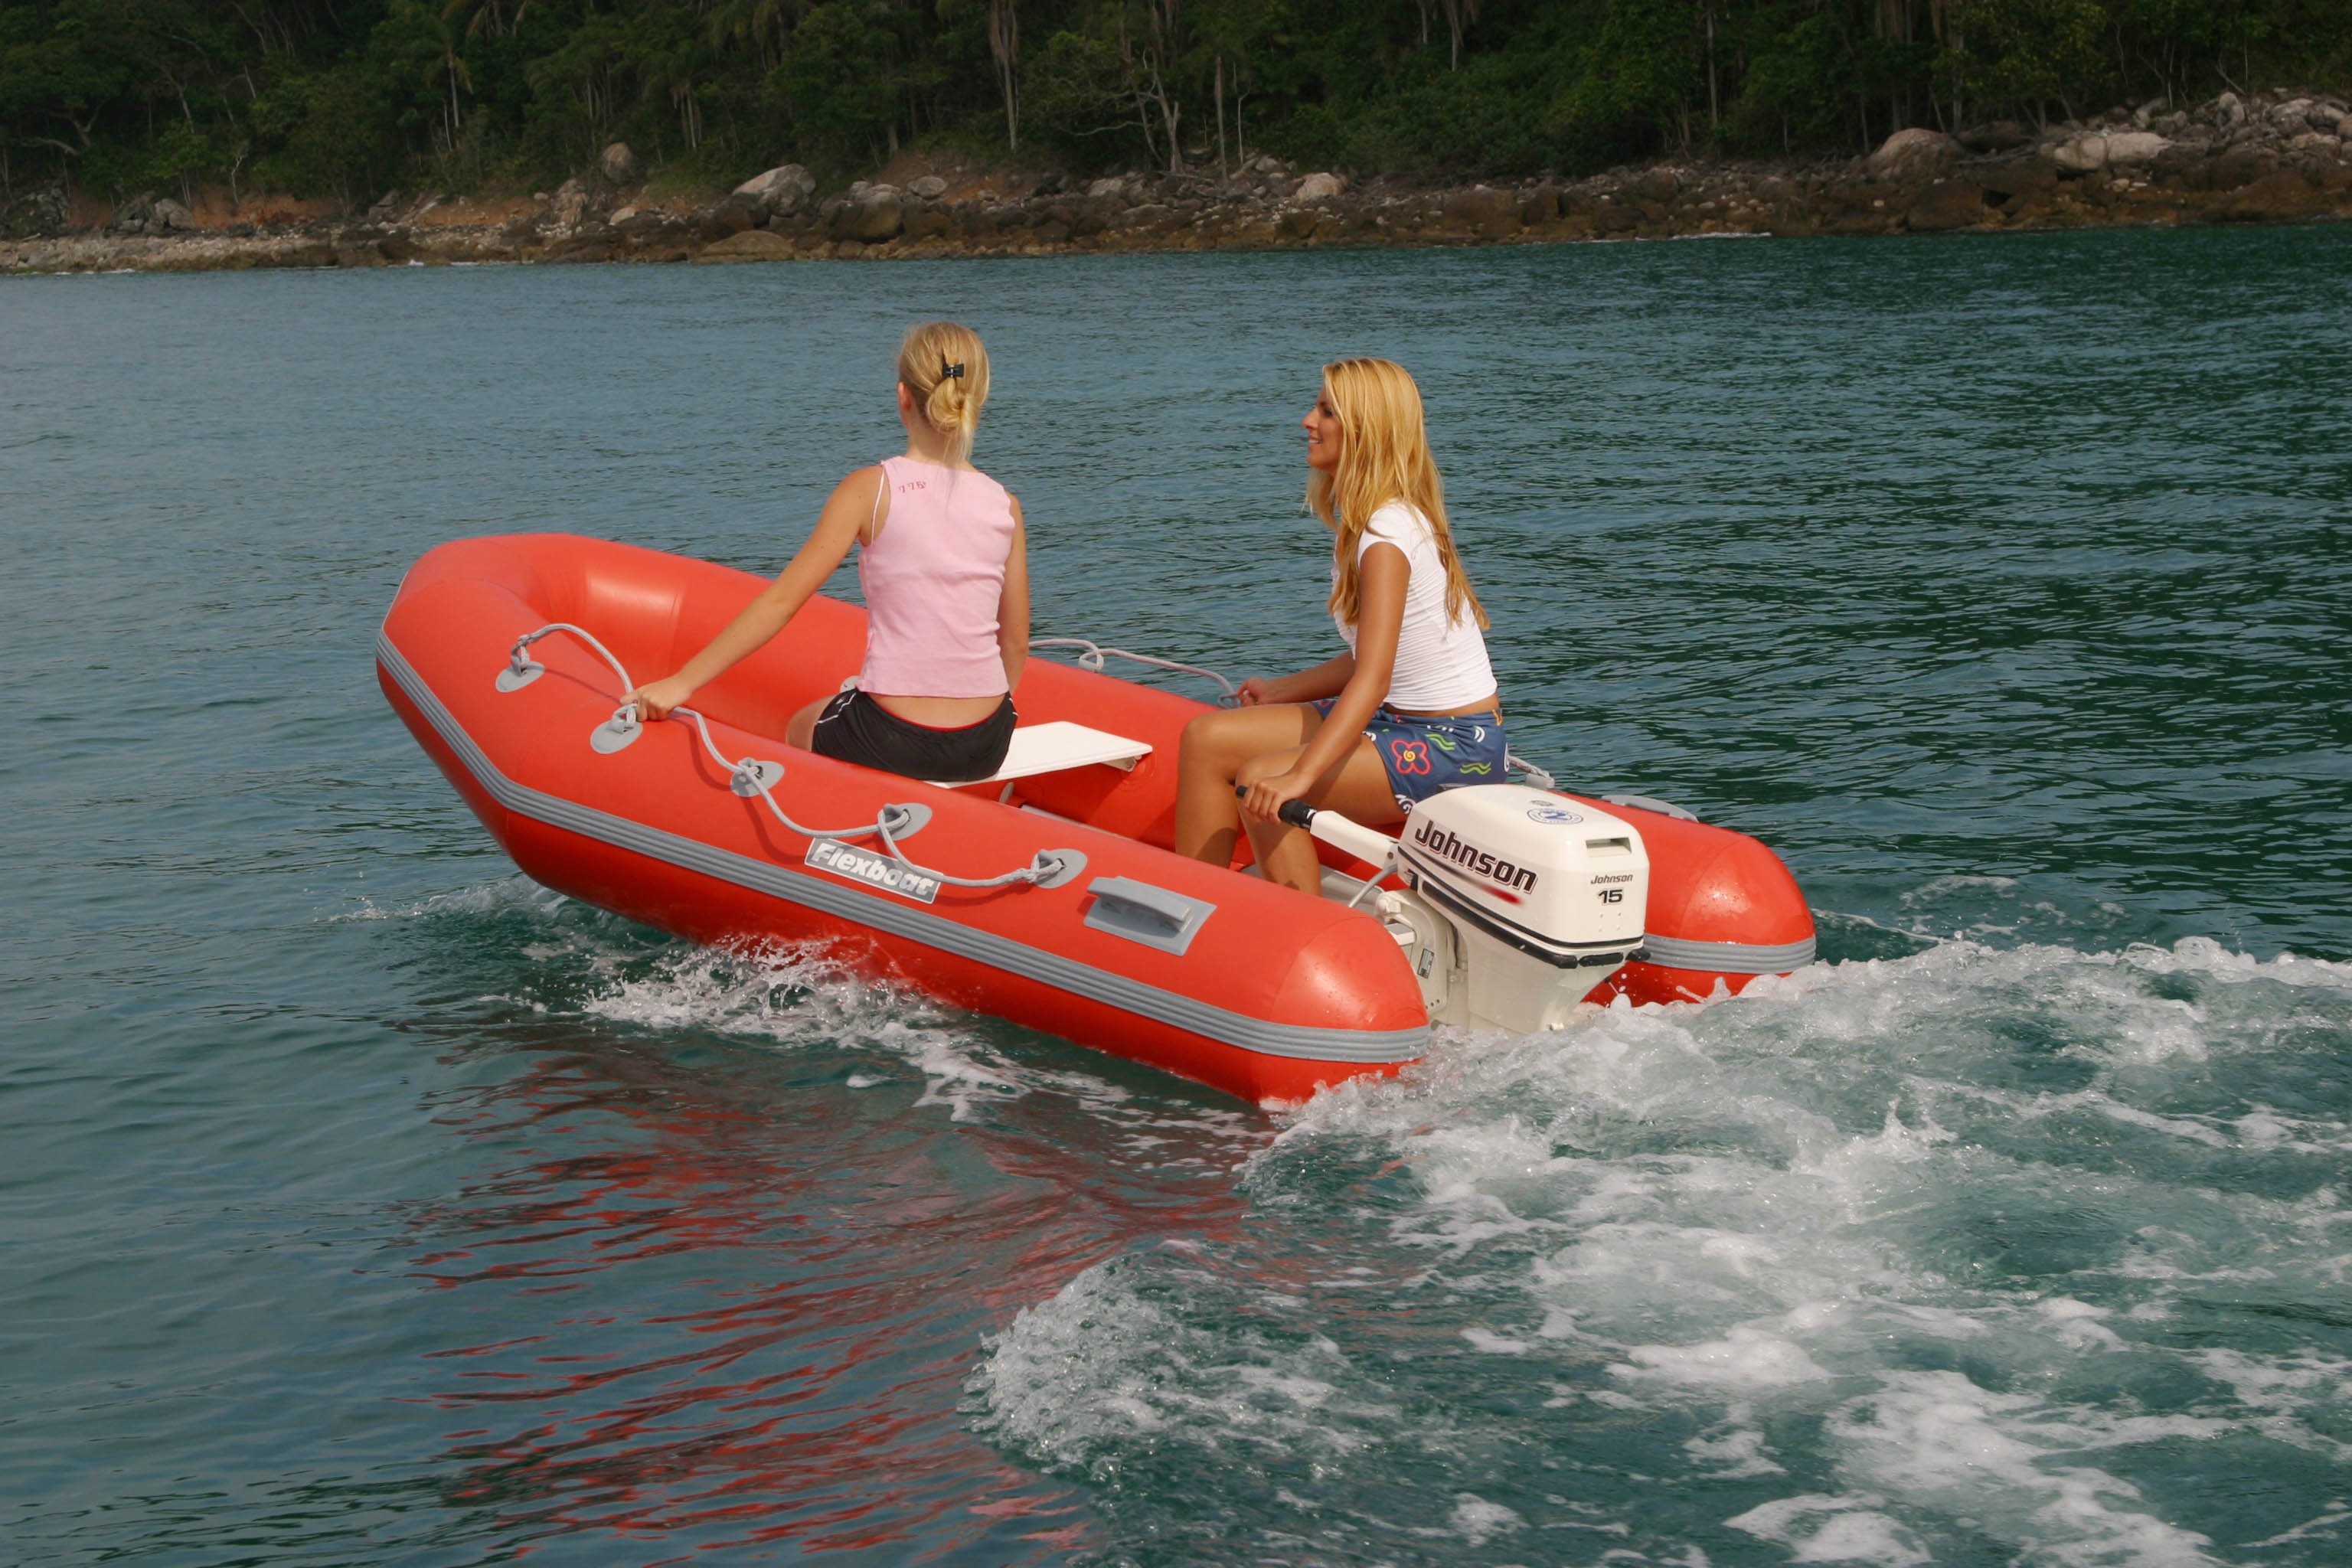 Flexboat SR 10 - S